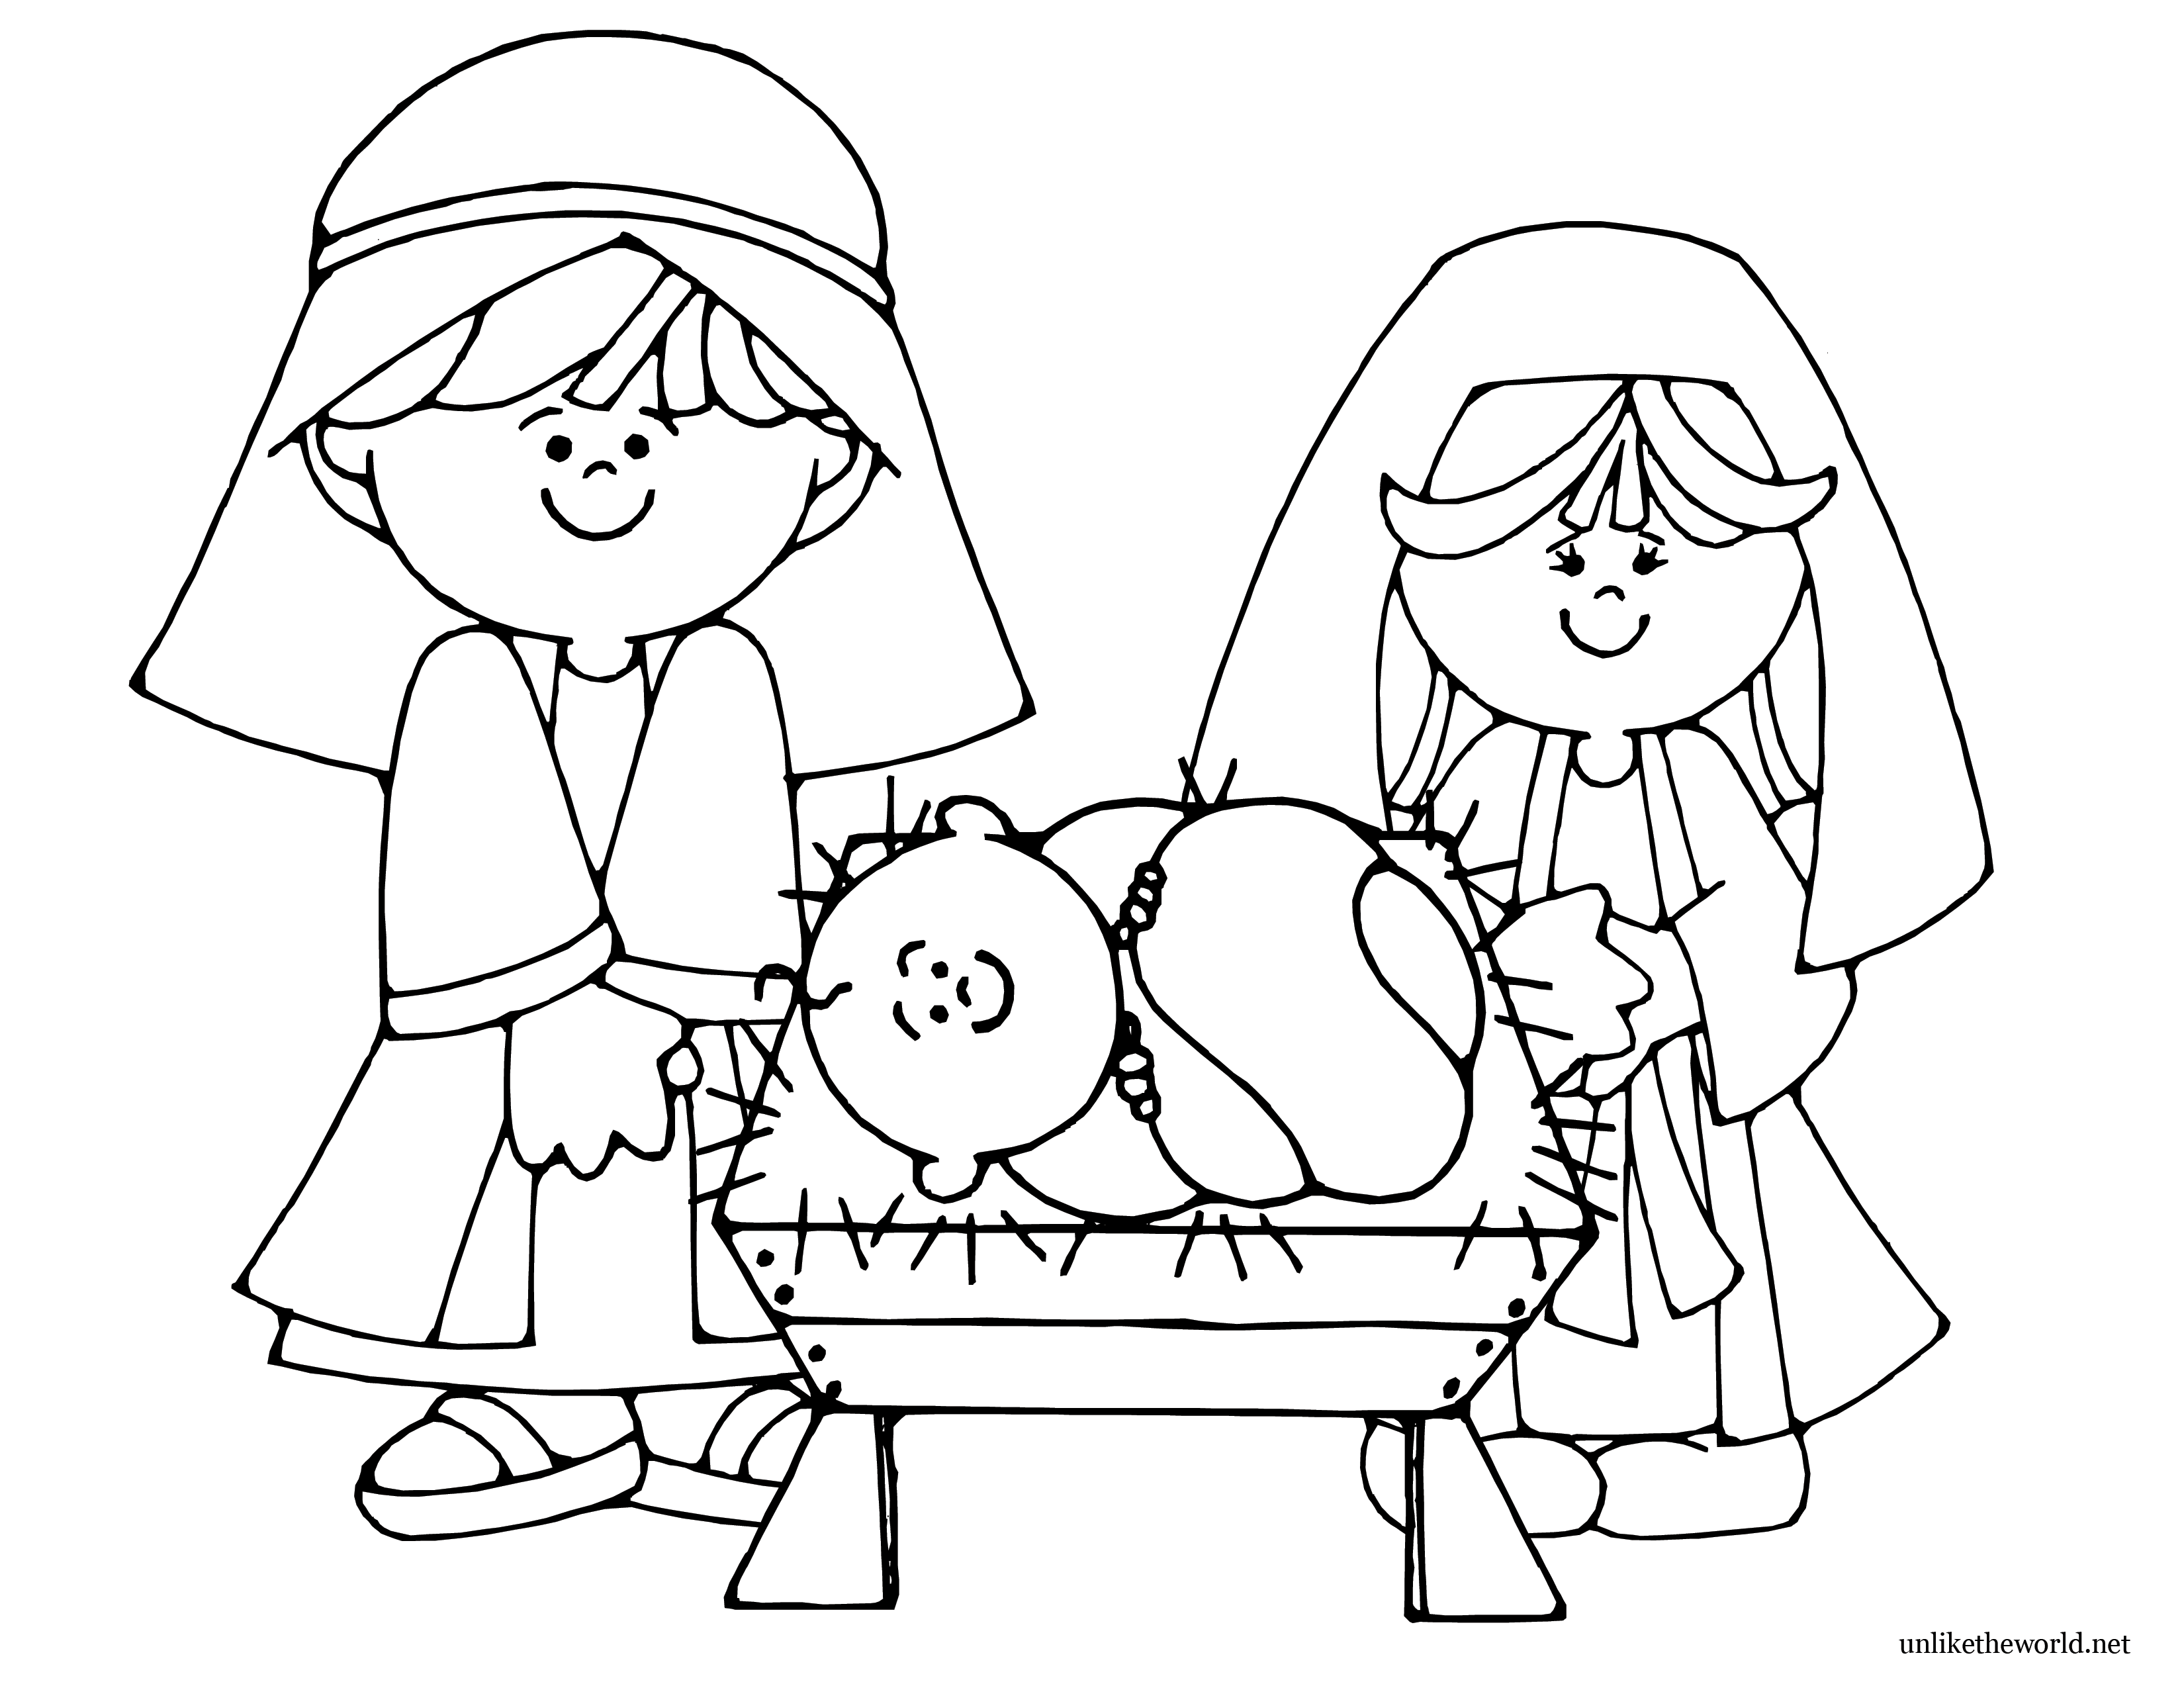 Nativity Scene Coloring Pages | Nativity coloring pages, Nativity ... | 2550x3300